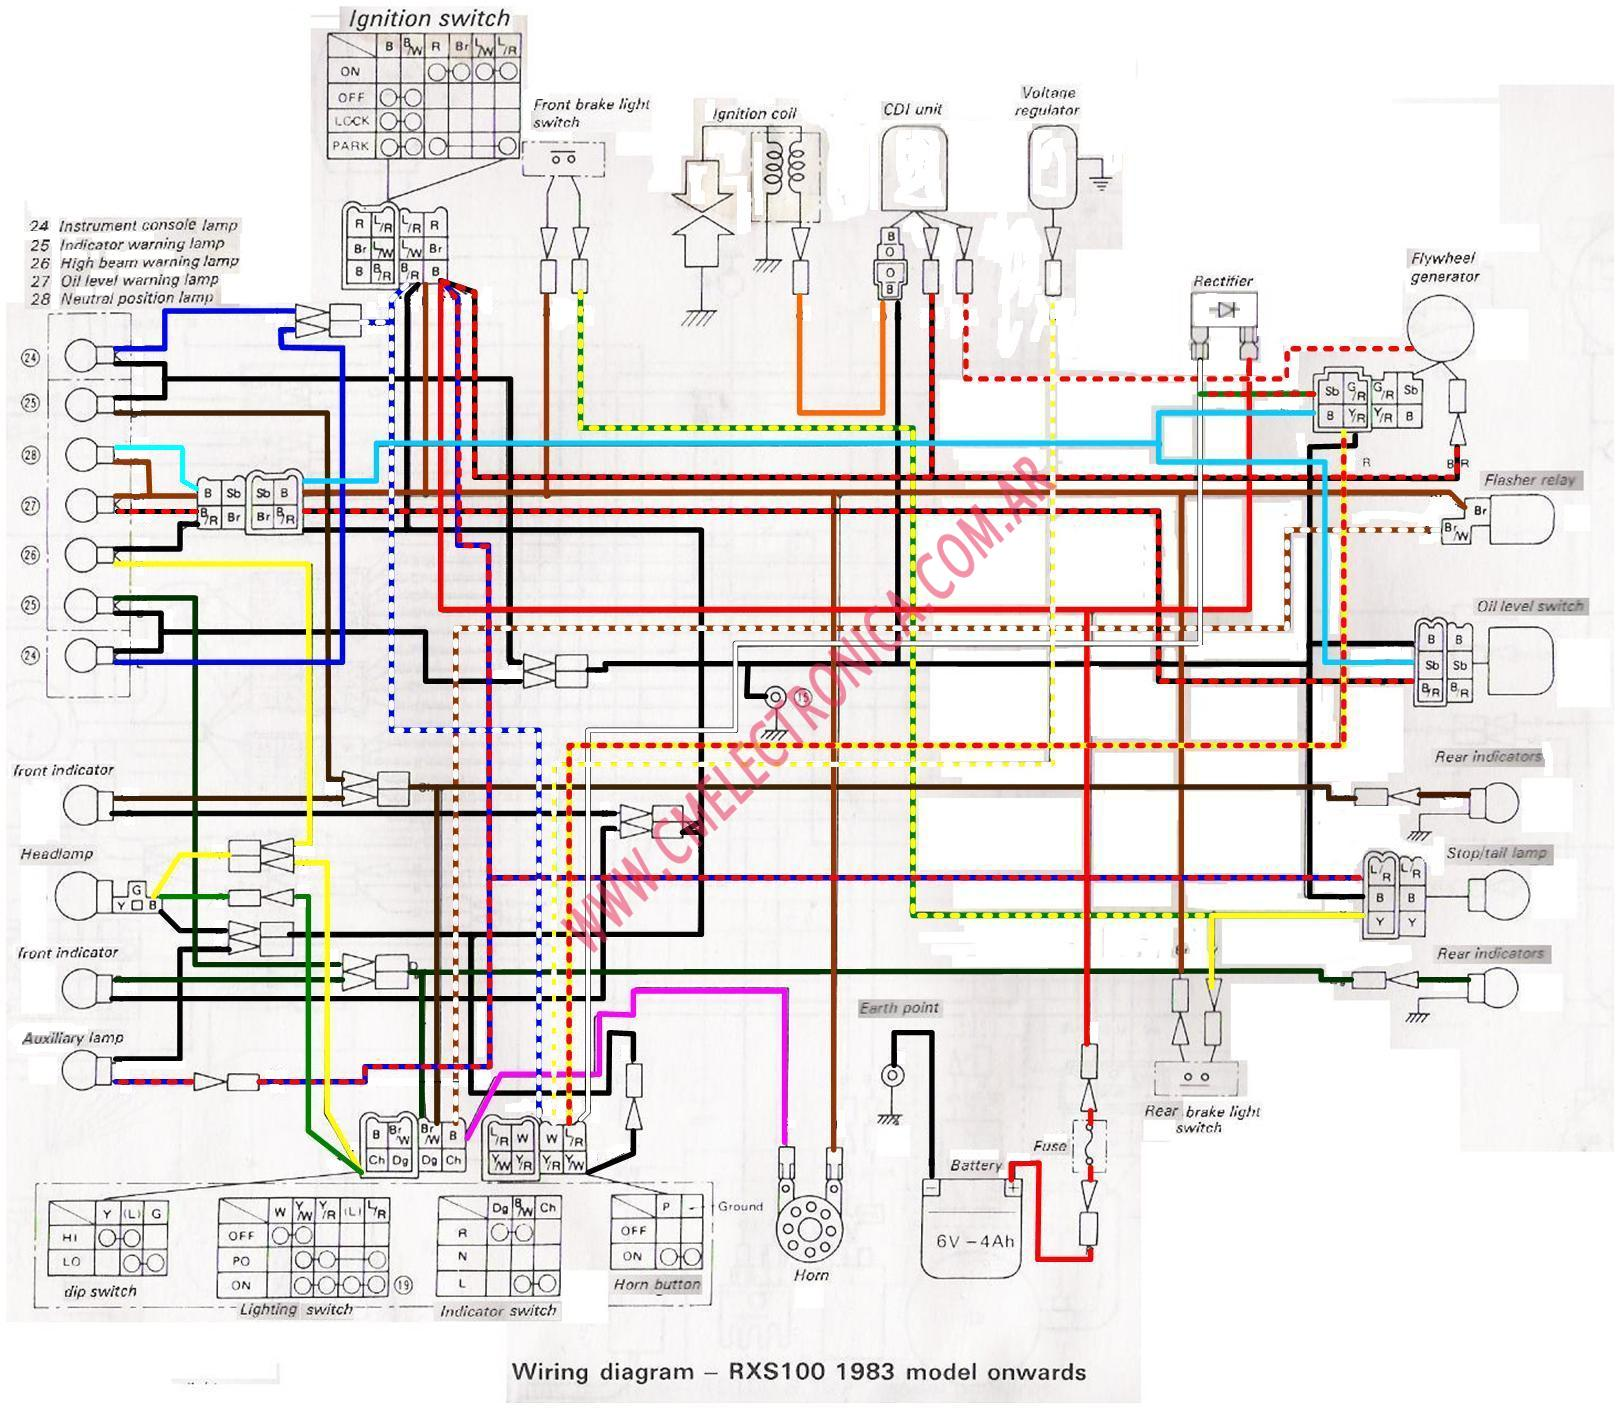 ke175 wiring diagram exclusive circuit wiring diagram u2022 rh internationalsportsoutlet co